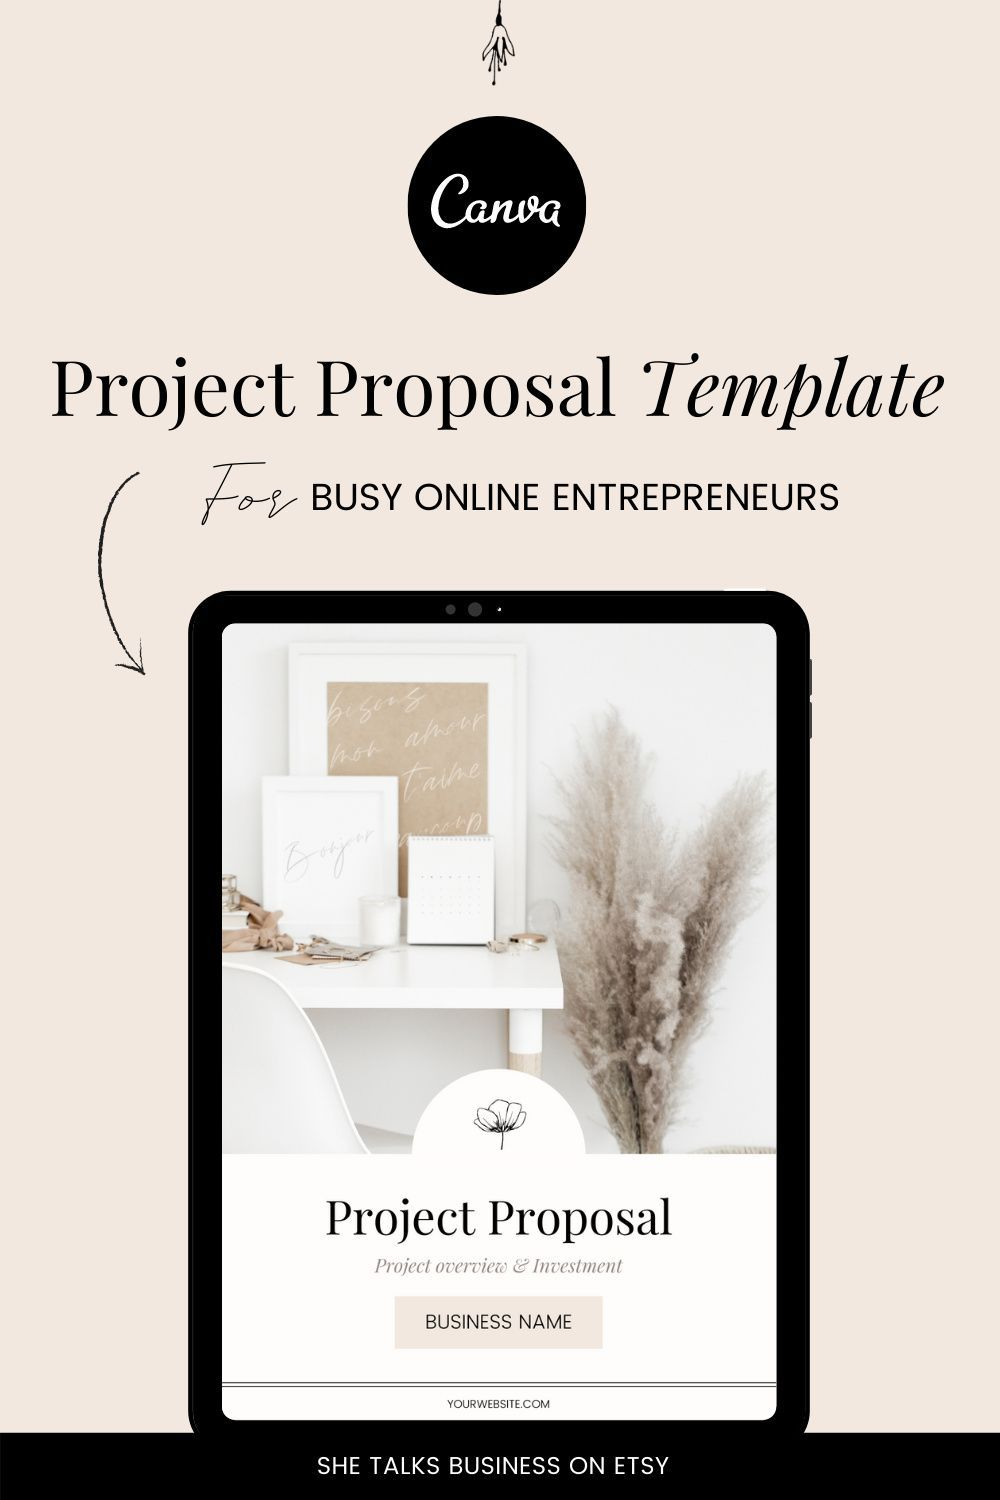 Project Proposal Template Project Proposal Canva Template Etsy Project Proposal Template Proposal Templates Project Proposal